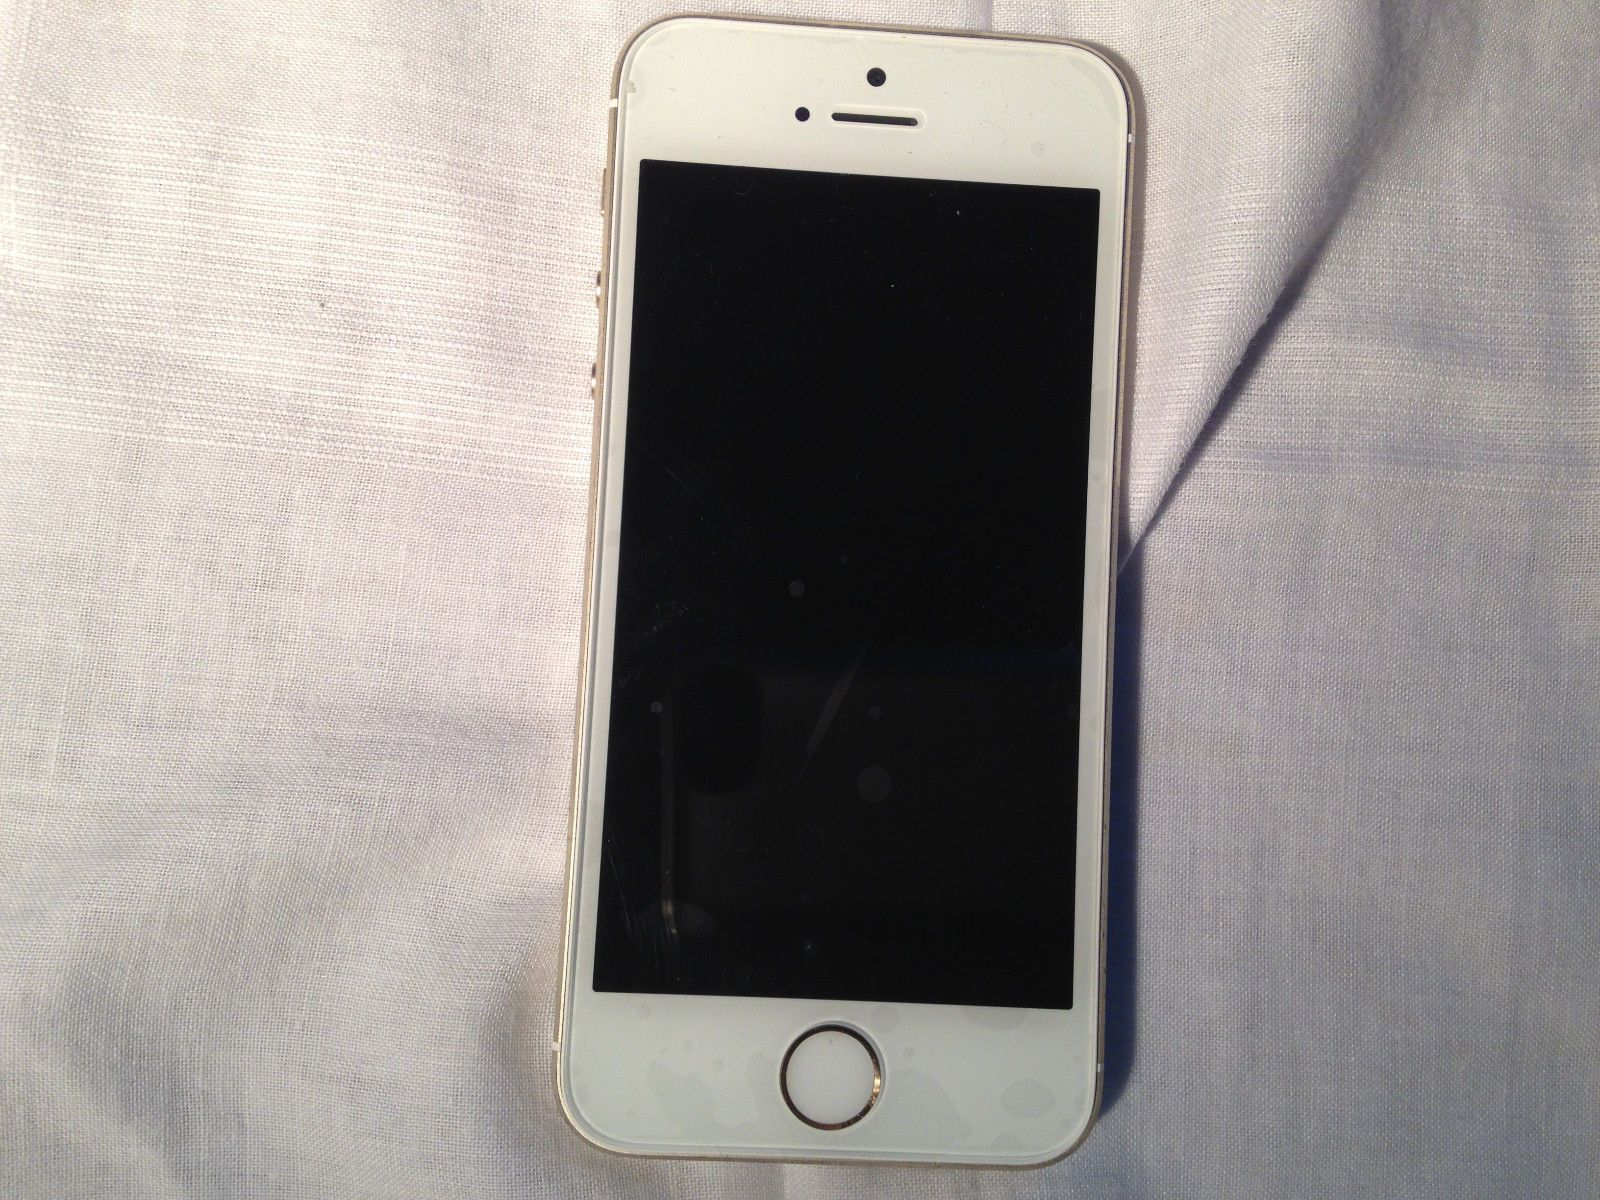 Apple iPhone 5s 16GB Tmobile unlocked nice condition https://t.co/p8DhDFQ4tC https://t.co/vp2rFts3iY